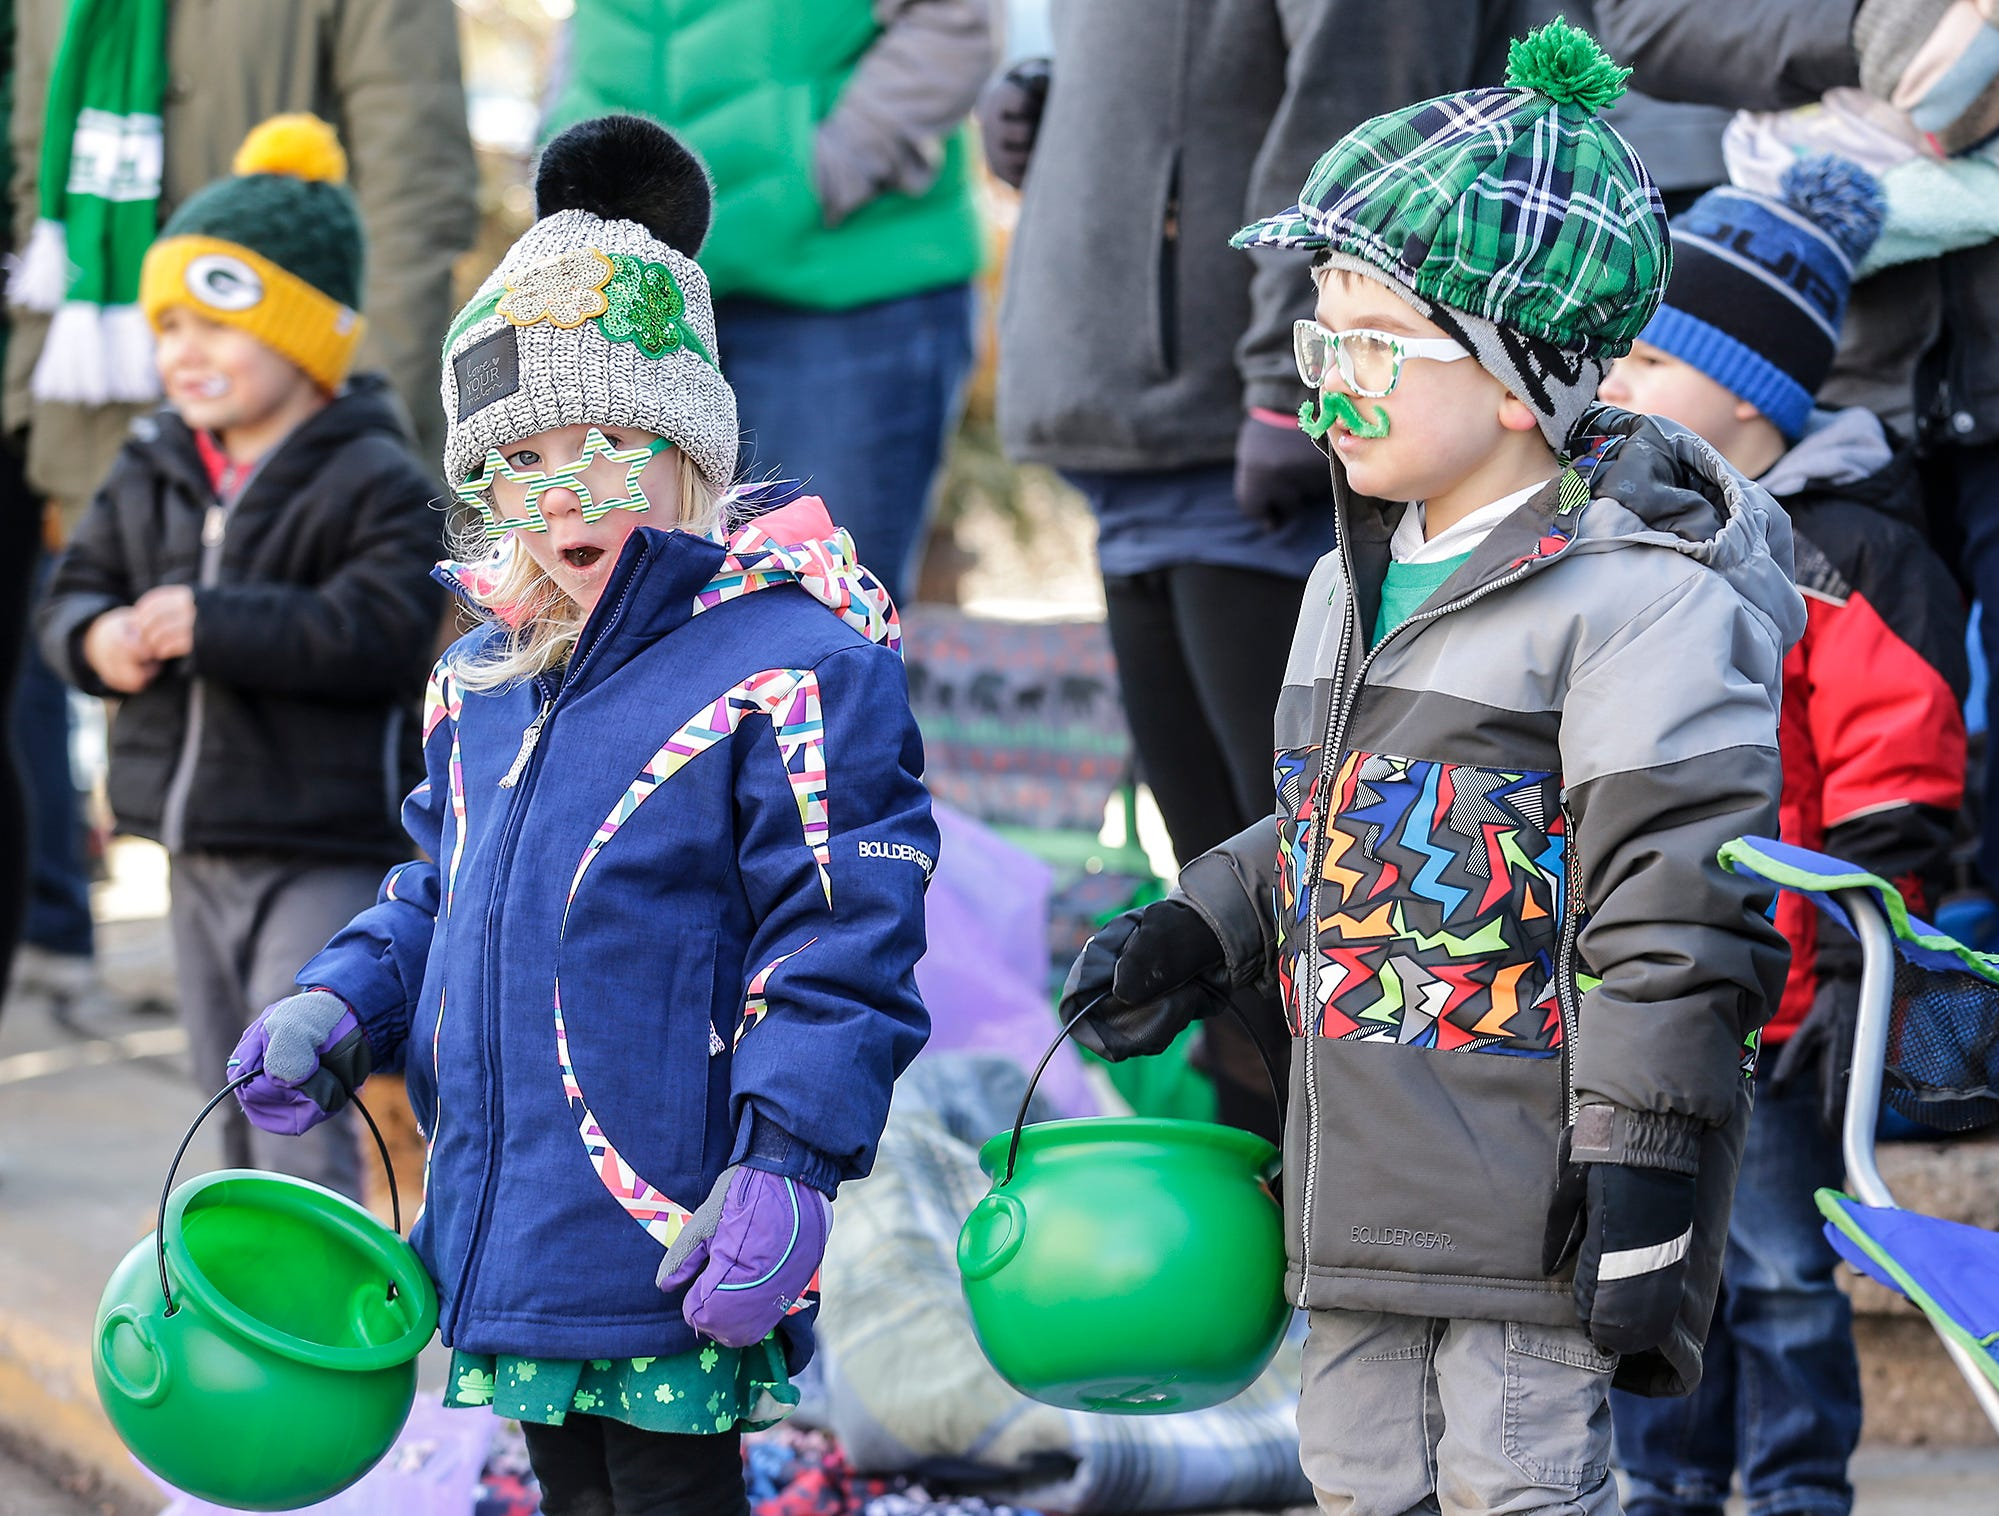 Jovie and Tye Zimmerman watch the City of Fond du Lac St. Patrick's Day Parade Saturday, March 16, 2019 on Main Street in downtown Fond du Lac. Hundreds of people lined the street to watch over 50 parade participants. Doug Raflik/USA TODAY NETWORK-Wisconsin